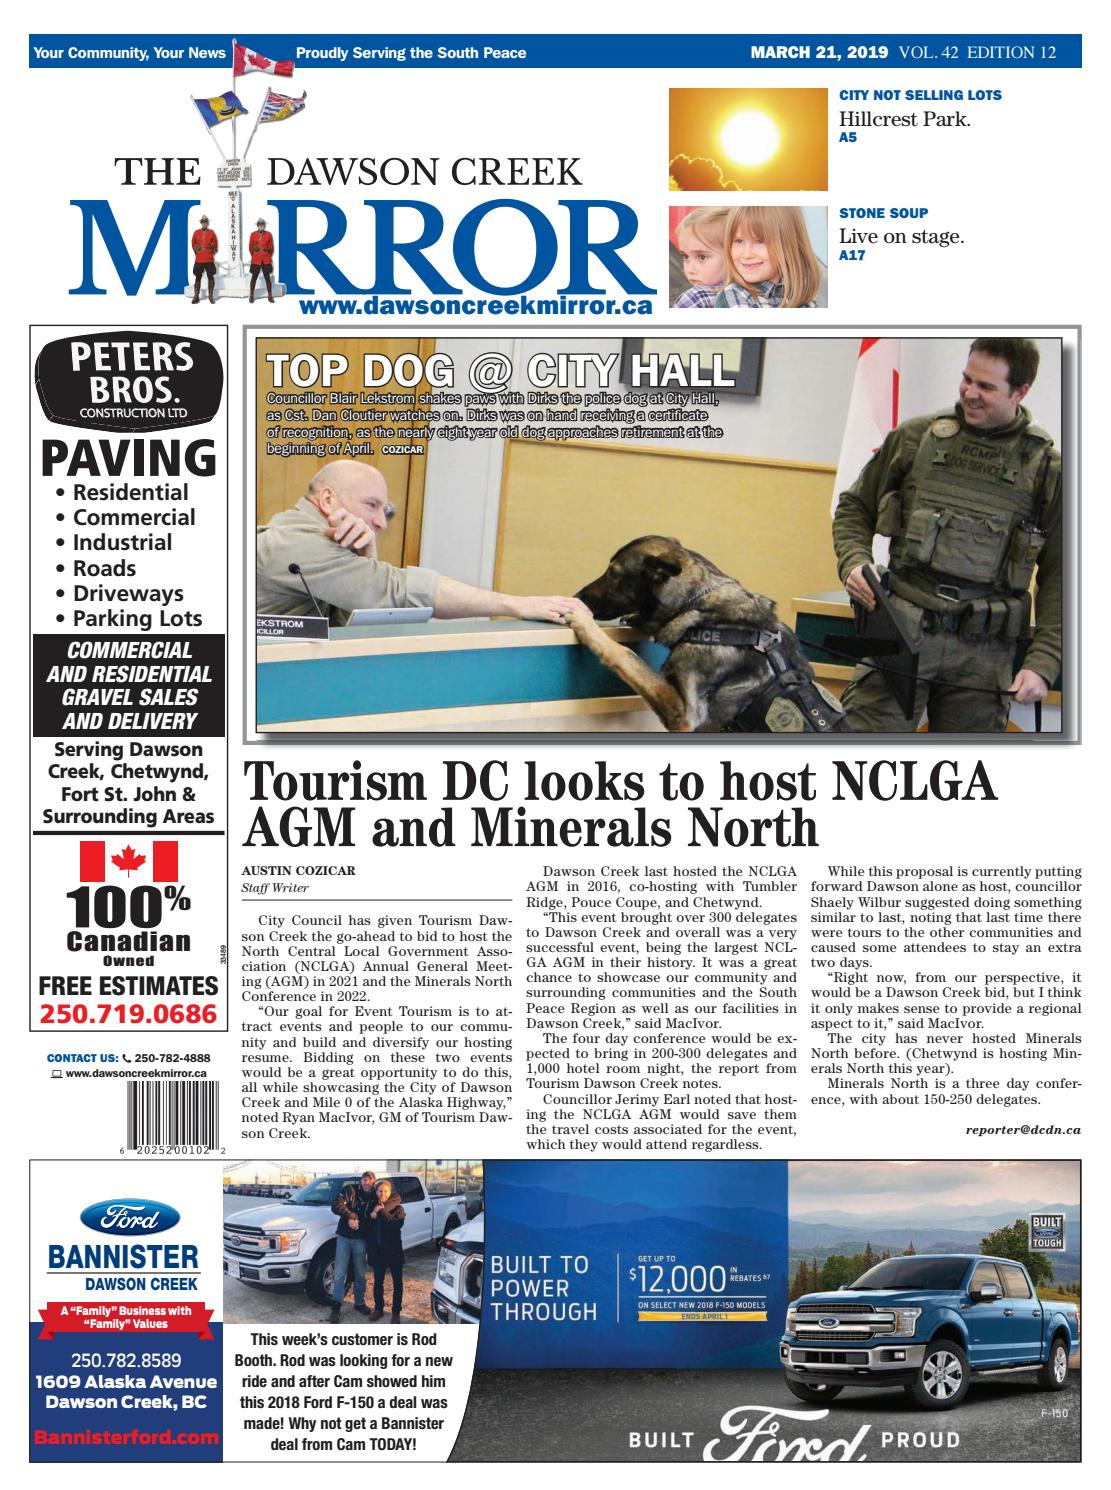 Dawson Creek Mirror 2019-0321 by The Mirror - issuu